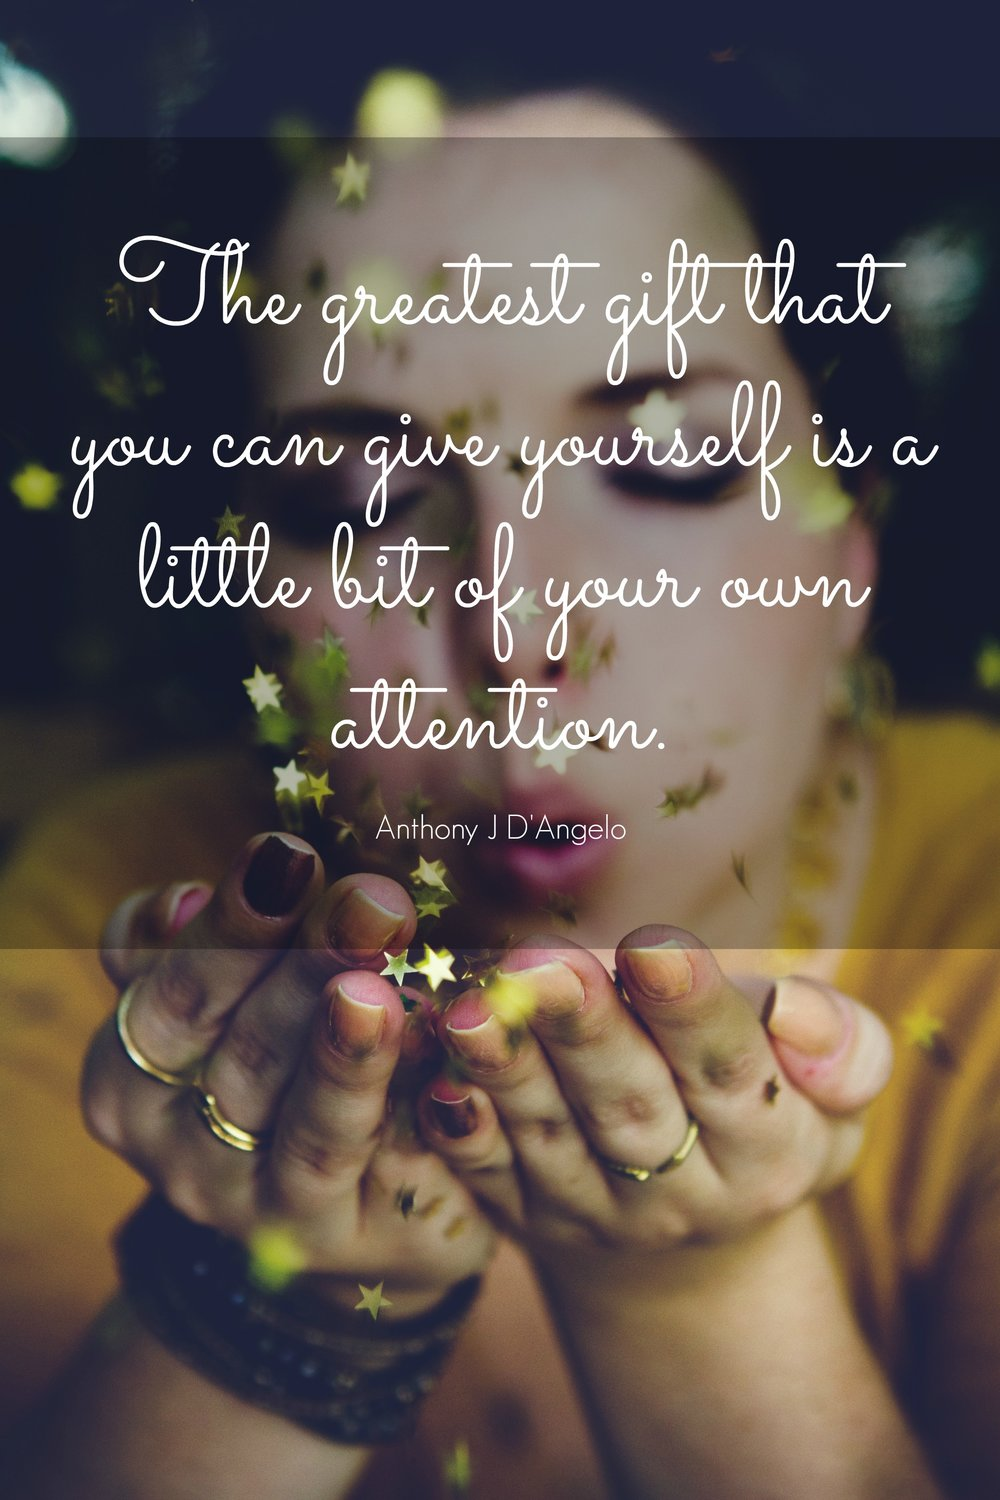 The greatest gift you can give yourself is a little bit of your own attention. Anthony J D'Angelo. Circle of Daydreams. www.circleofdaydreams.com